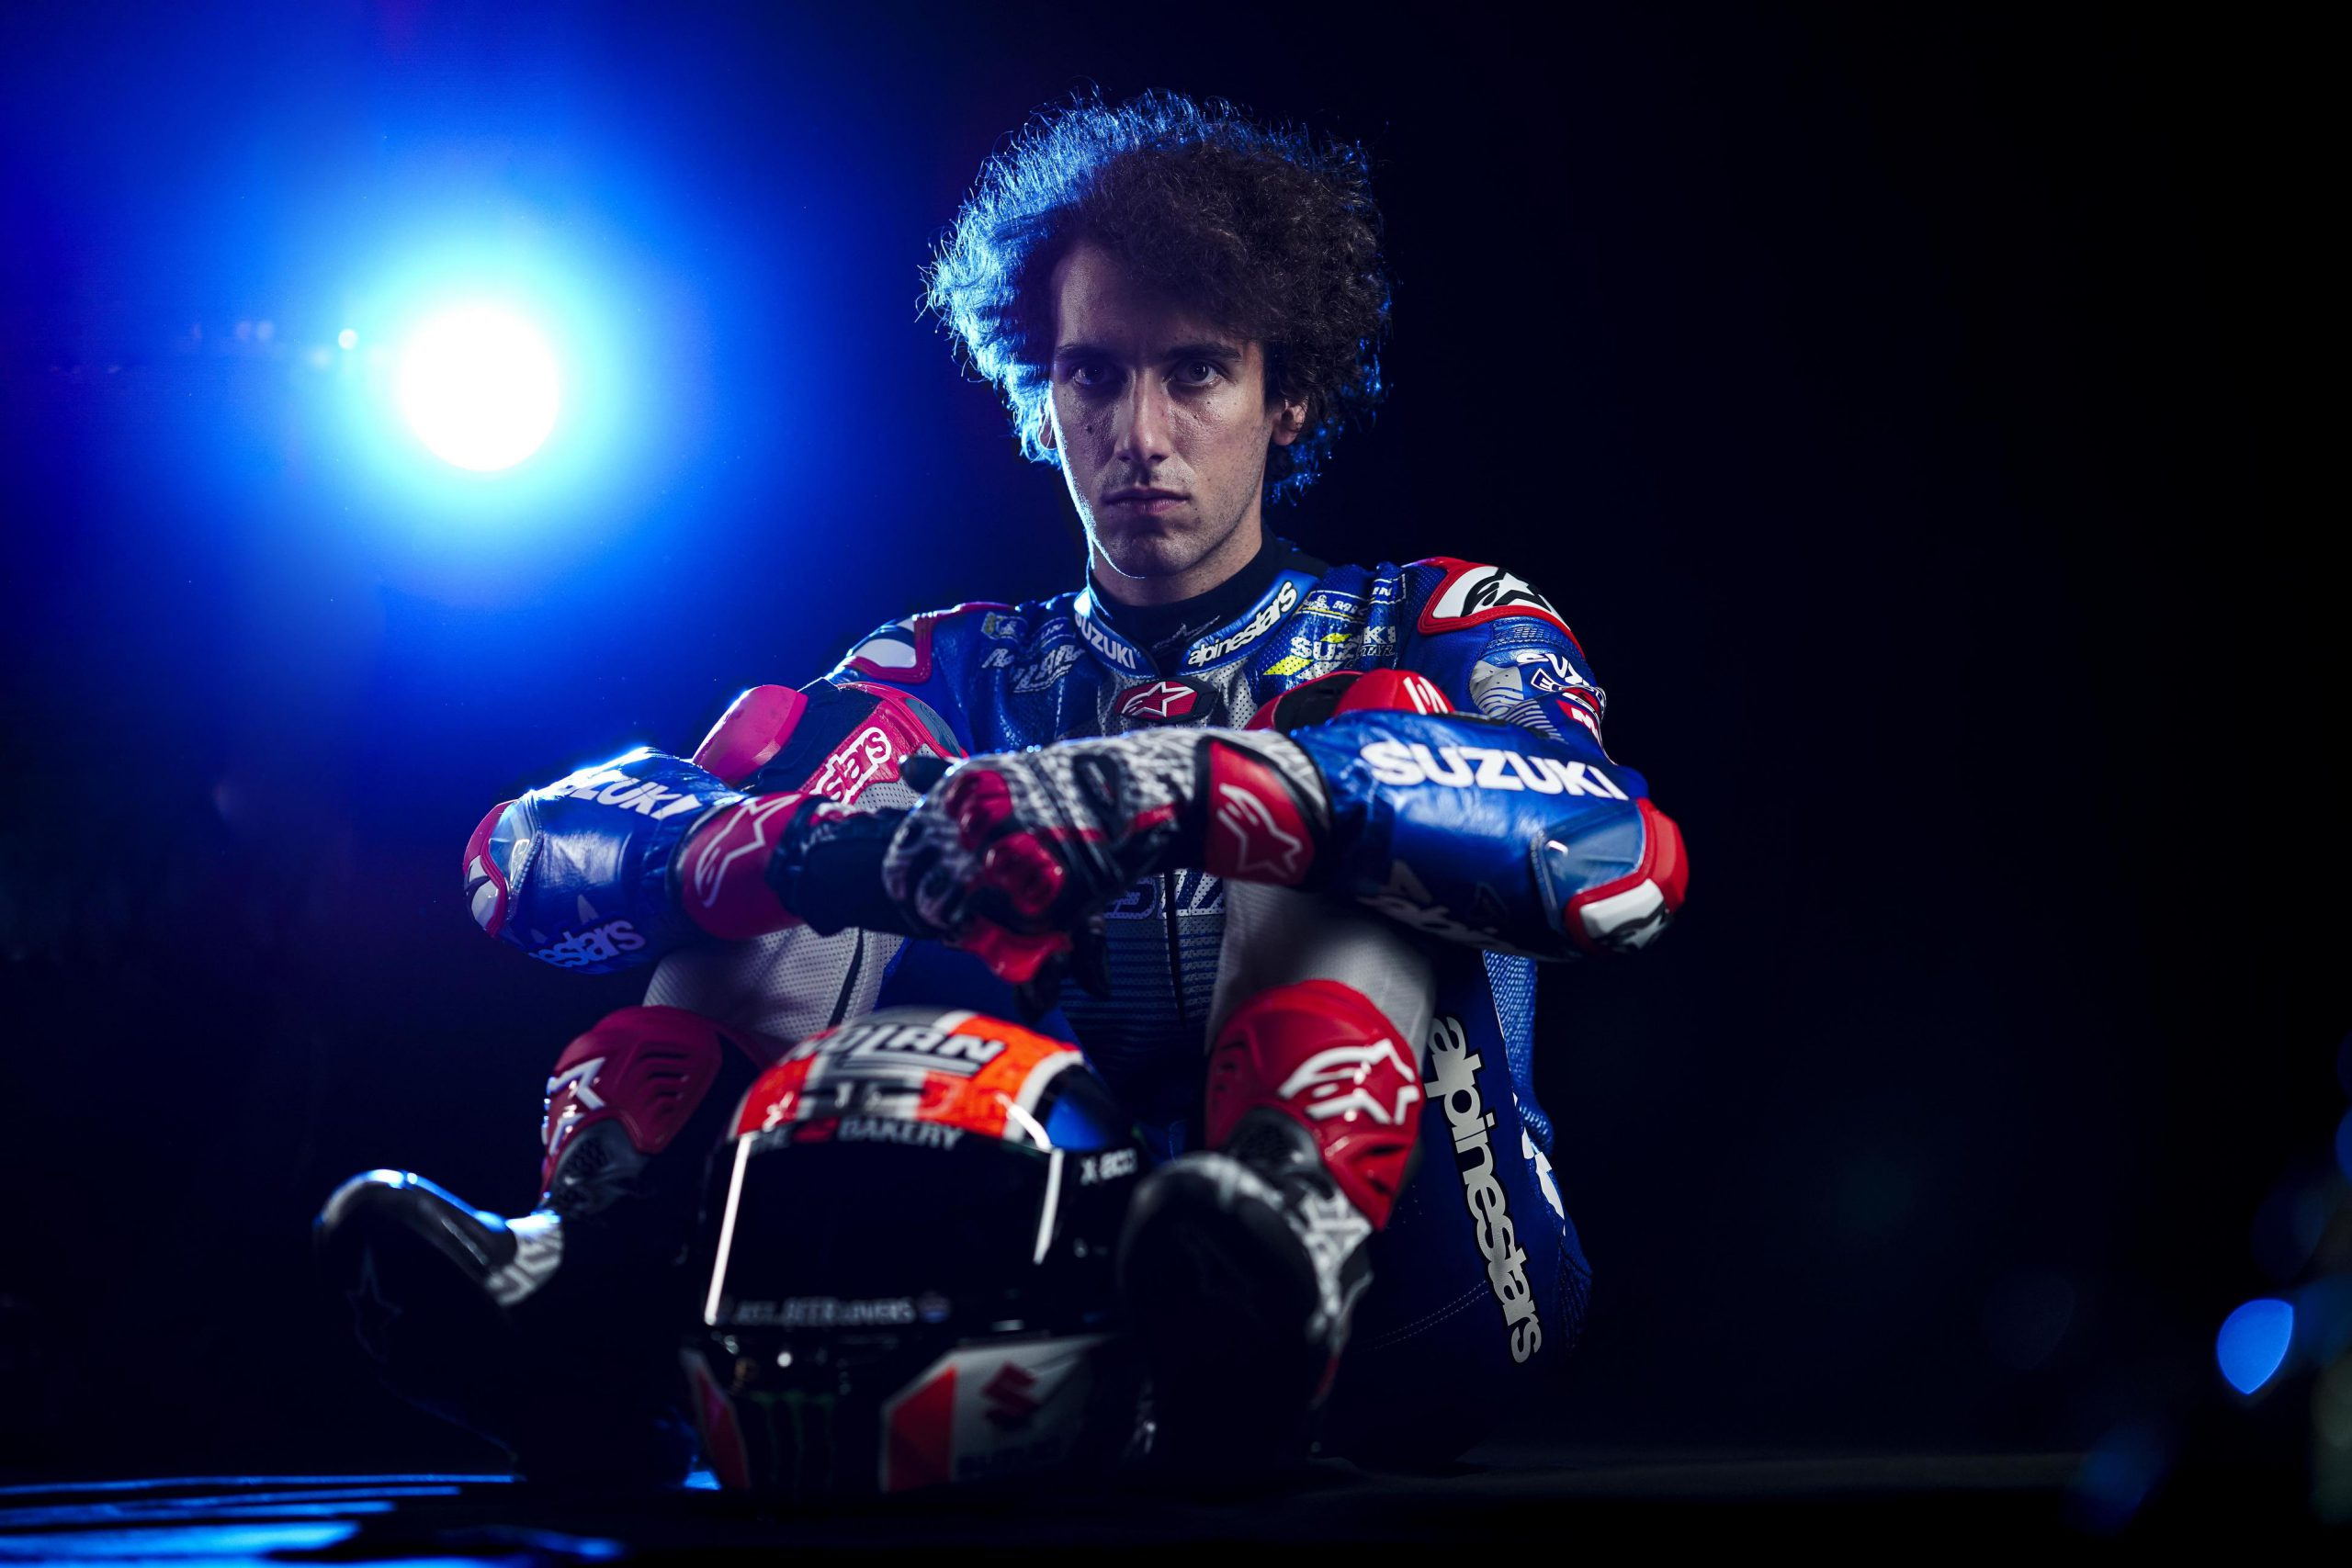 Alex Rins – 'Be Patient And Take Great Care'